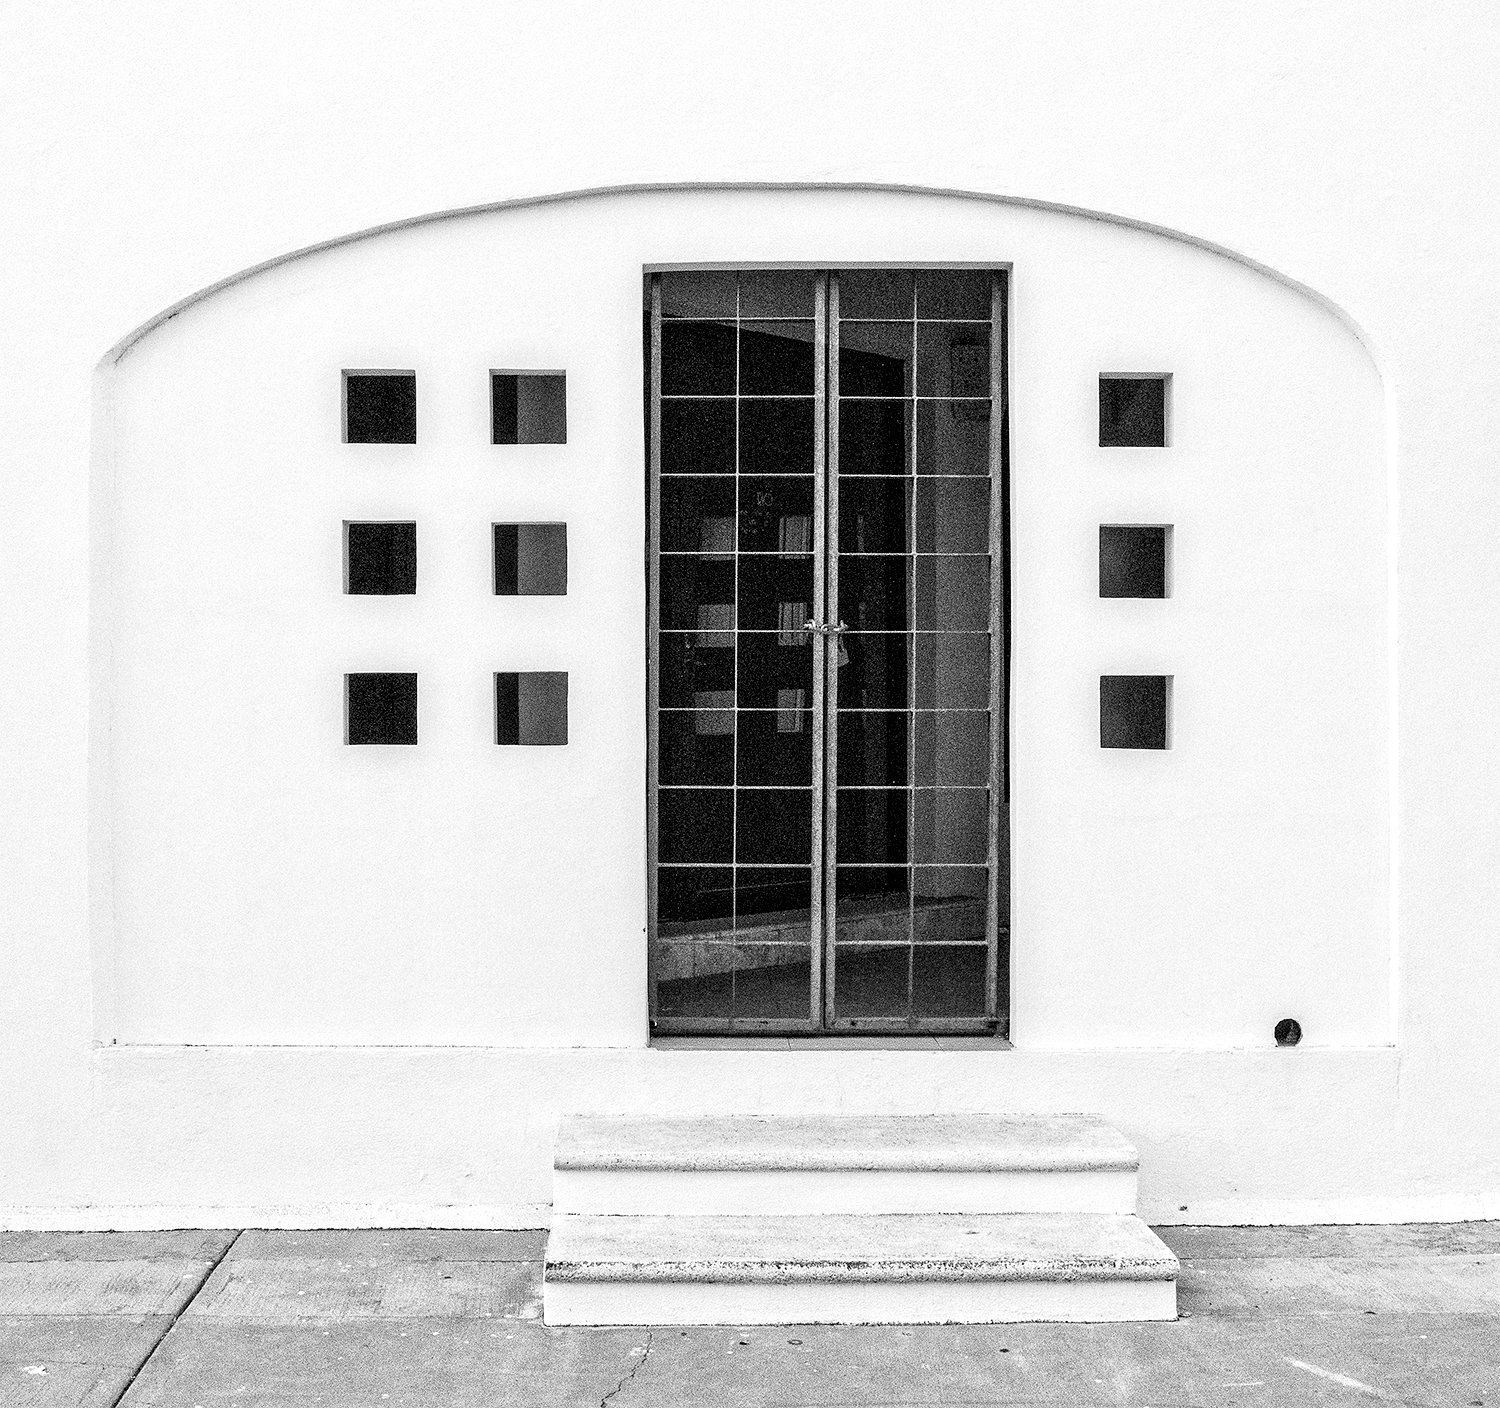 doors, Baja, architecture, welcome, entry way, back door, black and white